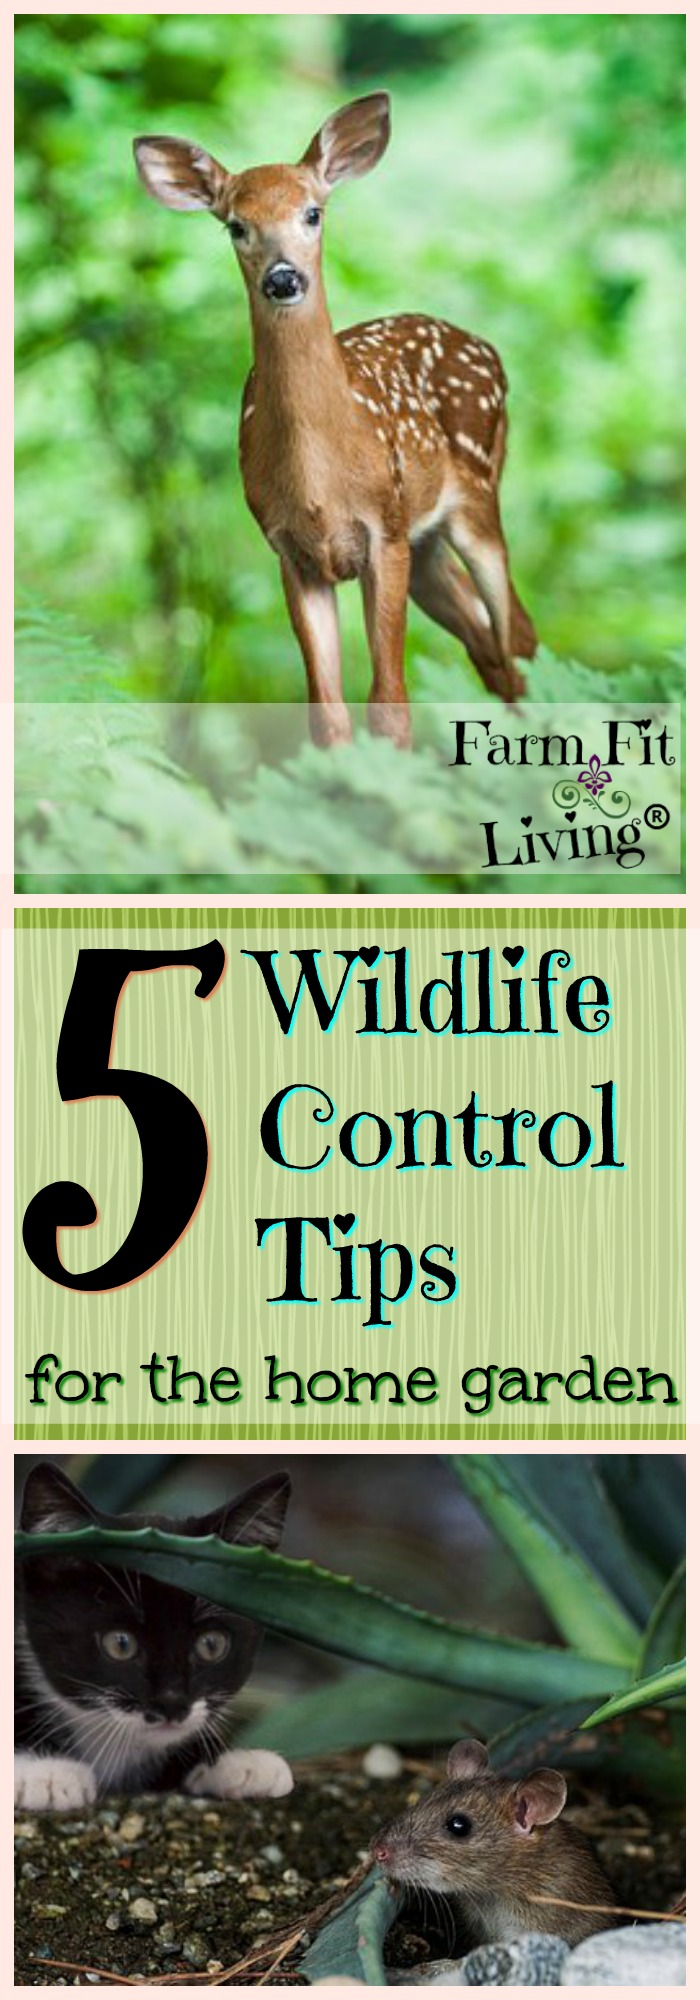 Rodents or Deer eating on your garden year after year? Make them stop! Take control of your garden again with these 5 Wildlife Control Tips for the home garden. #homegardentips #gardenhacks #wildlifecontroltips #farmfitliving